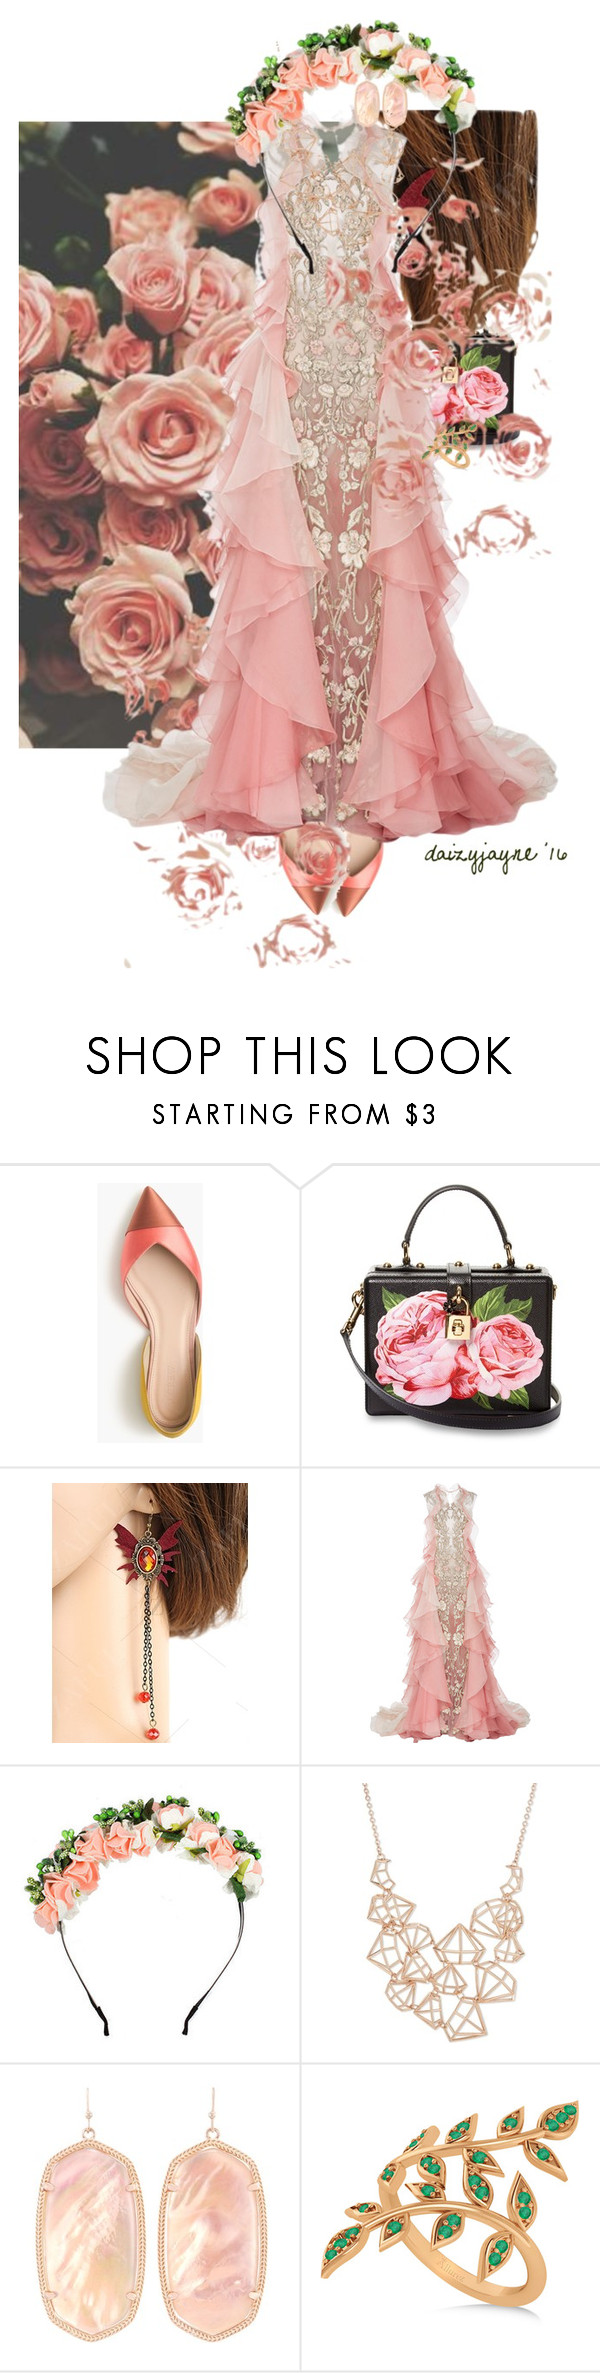 """rose petals"" by daizyjayne ❤ liked on Polyvore featuring Witchery, J.Crew, Dolce&Gabbana, Marchesa, Ted Baker, Kendra Scott, Allurez, contestentry and MastersOfMimicry"